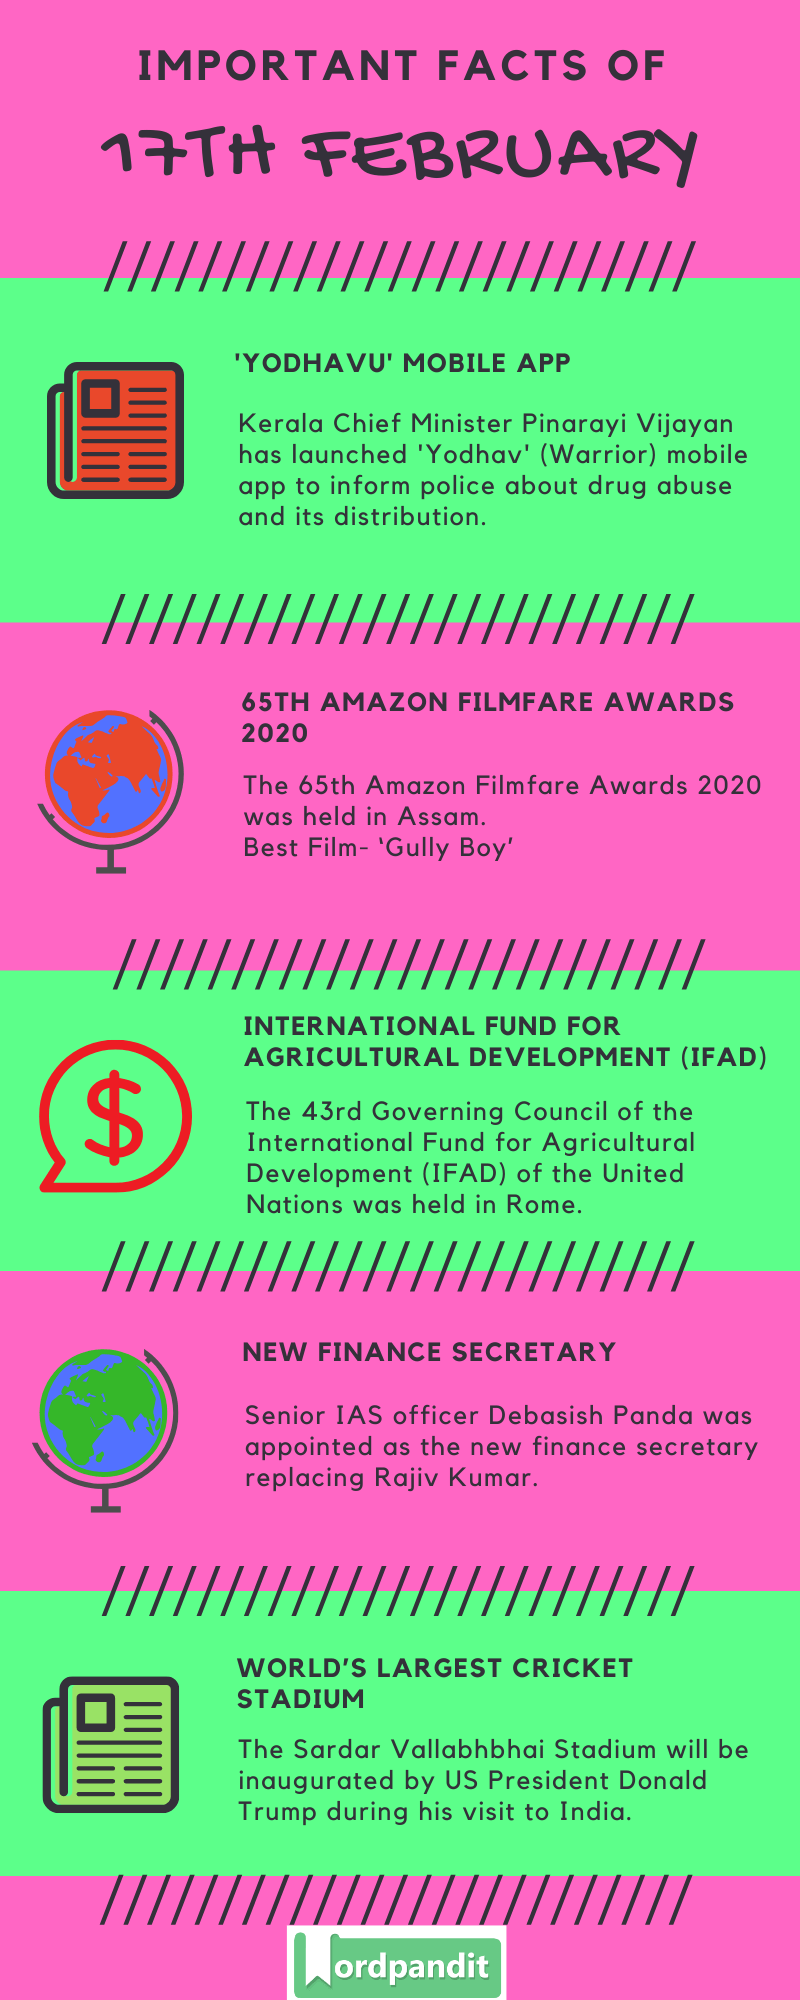 Daily Current Affairs 17 February 2020 Current Affairs Quiz 17 February 2020 Current Affairs Infographic